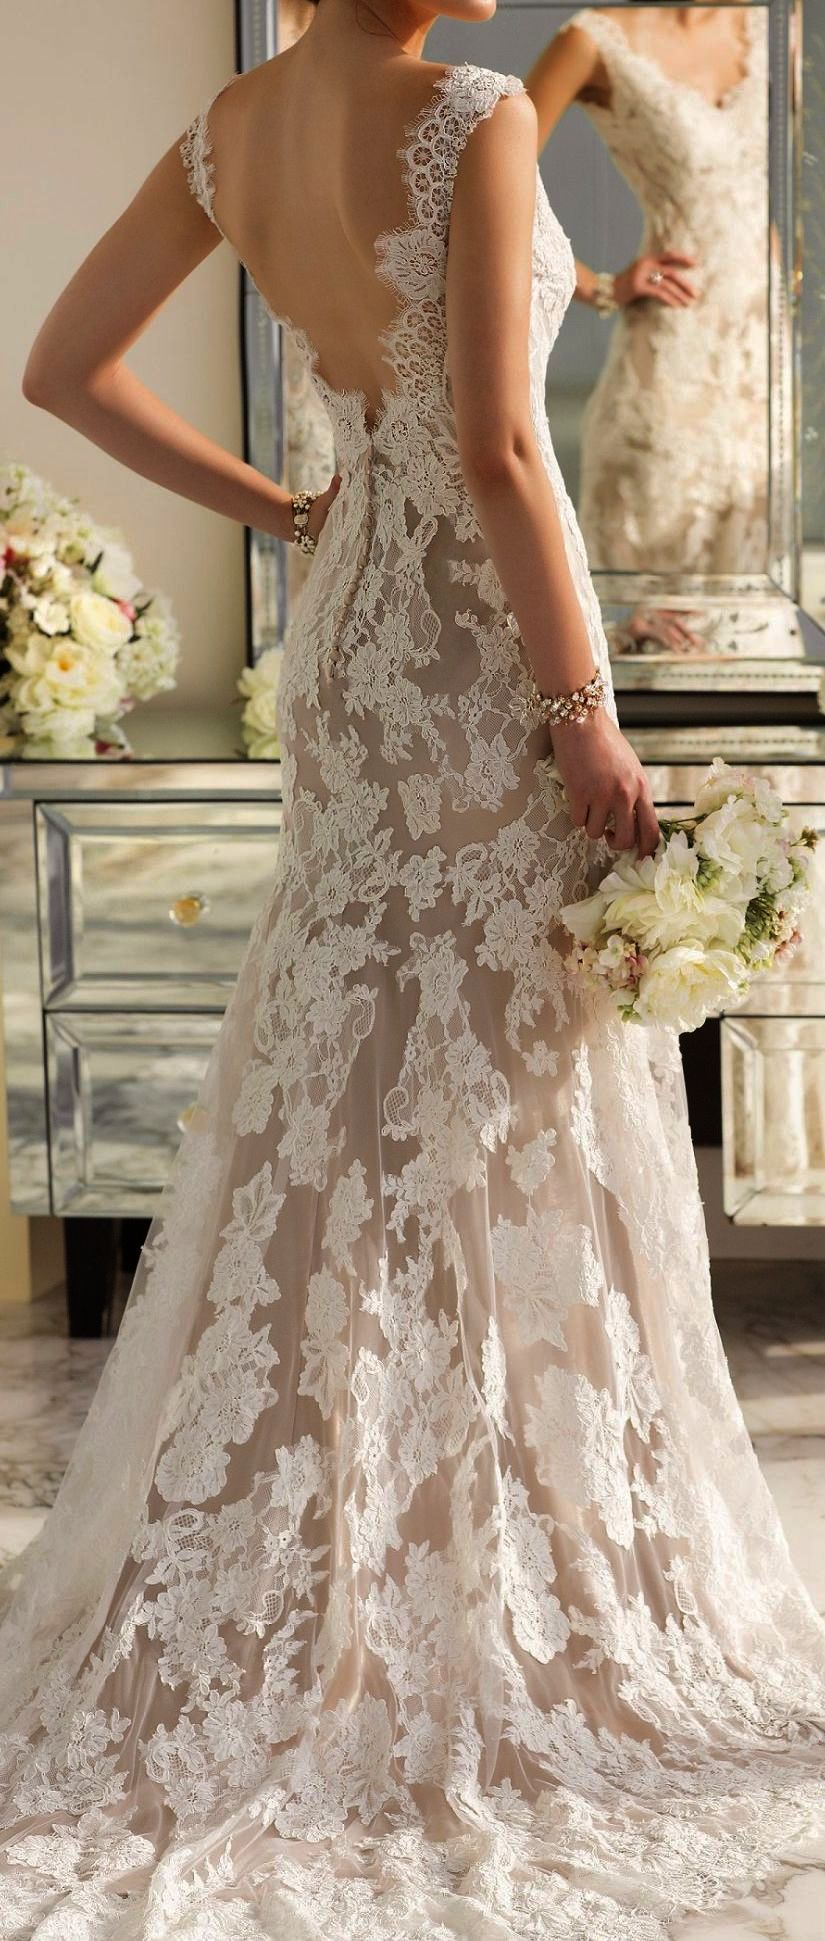 Lace mermaid wedding gowns with long trains  Outstanding  Lace Mermaid Wedding Dresses With Long Train   Lace